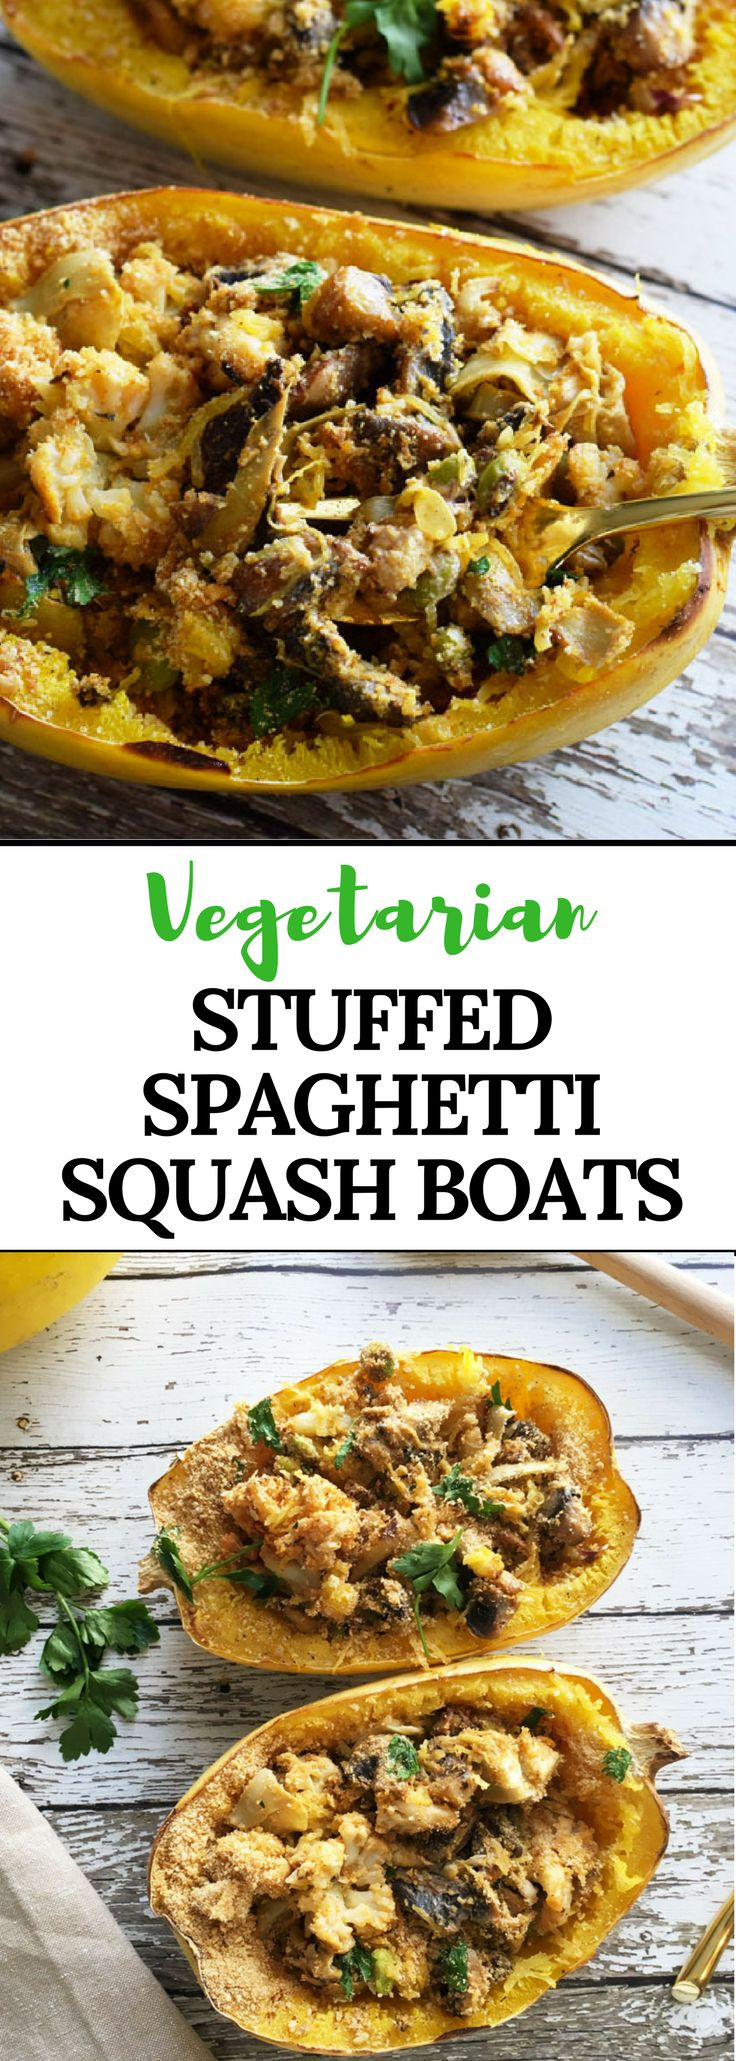 Vegetarian Stuffed Spaghetti Squash Boats are a delicious, meat free option stuffed with creamy veggies and cheesy goodness. This dish is great for any time of year, and even boasts some healthy prebiotics and probiotics.